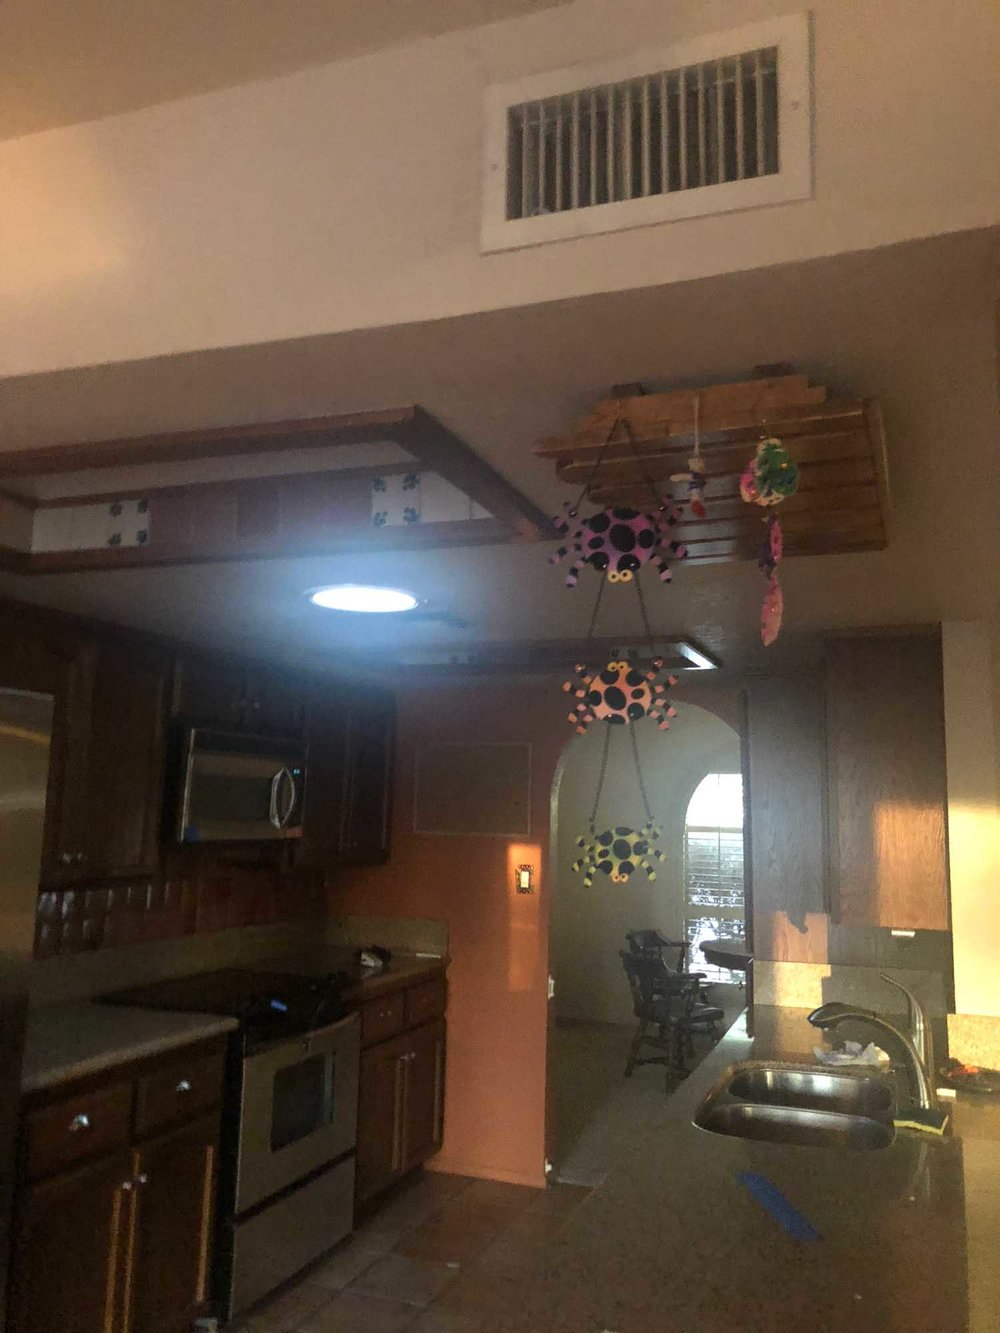 Kitchen with old ceiling mouldings and decorations